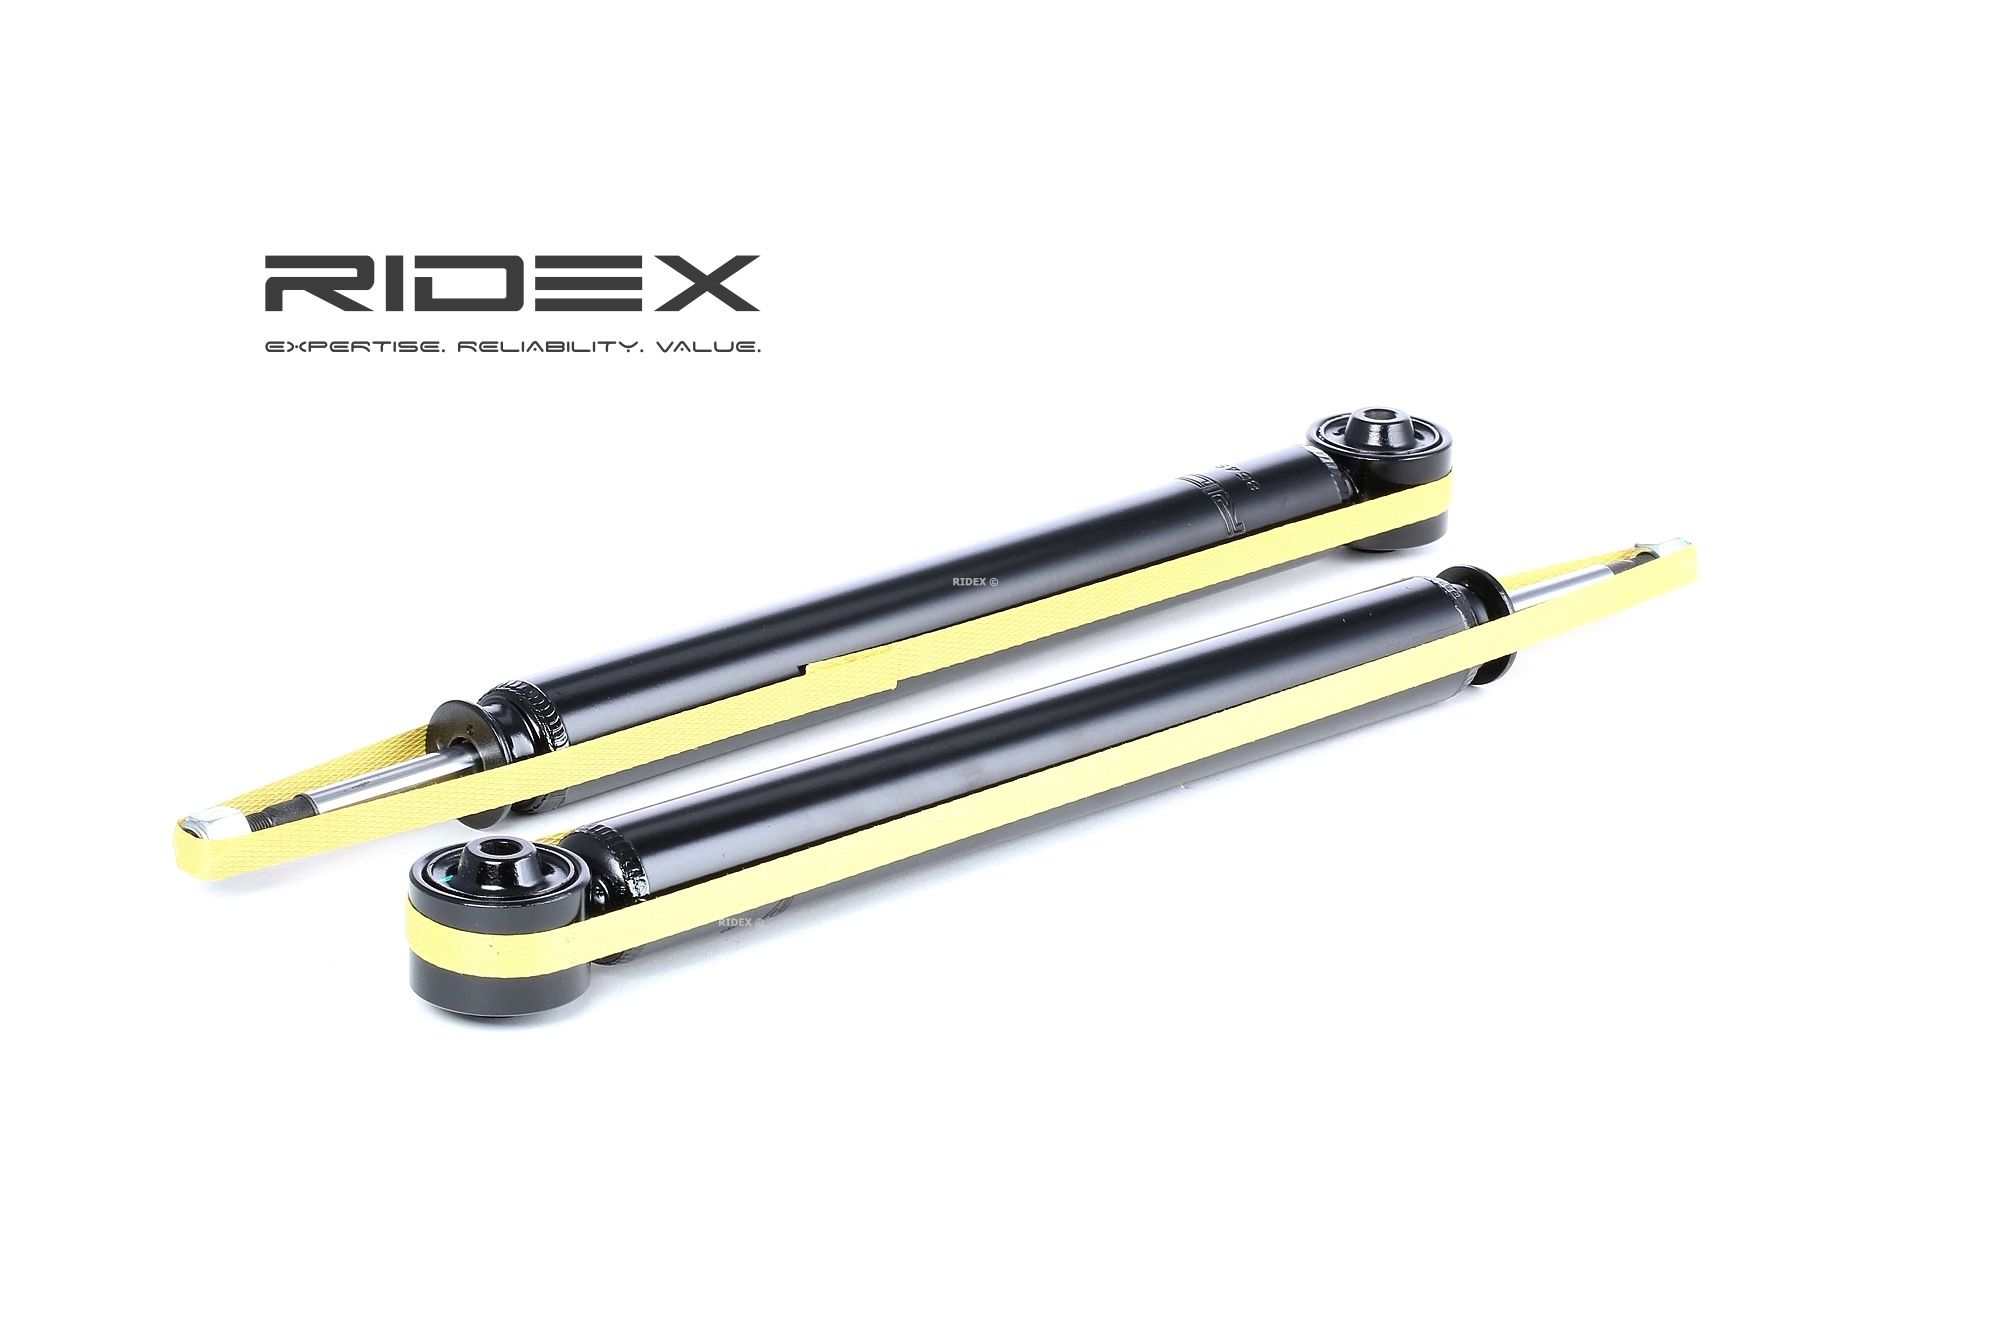 RIDEX 854S1536 Amortiguador Long.: 396mm, Long.: 633mm